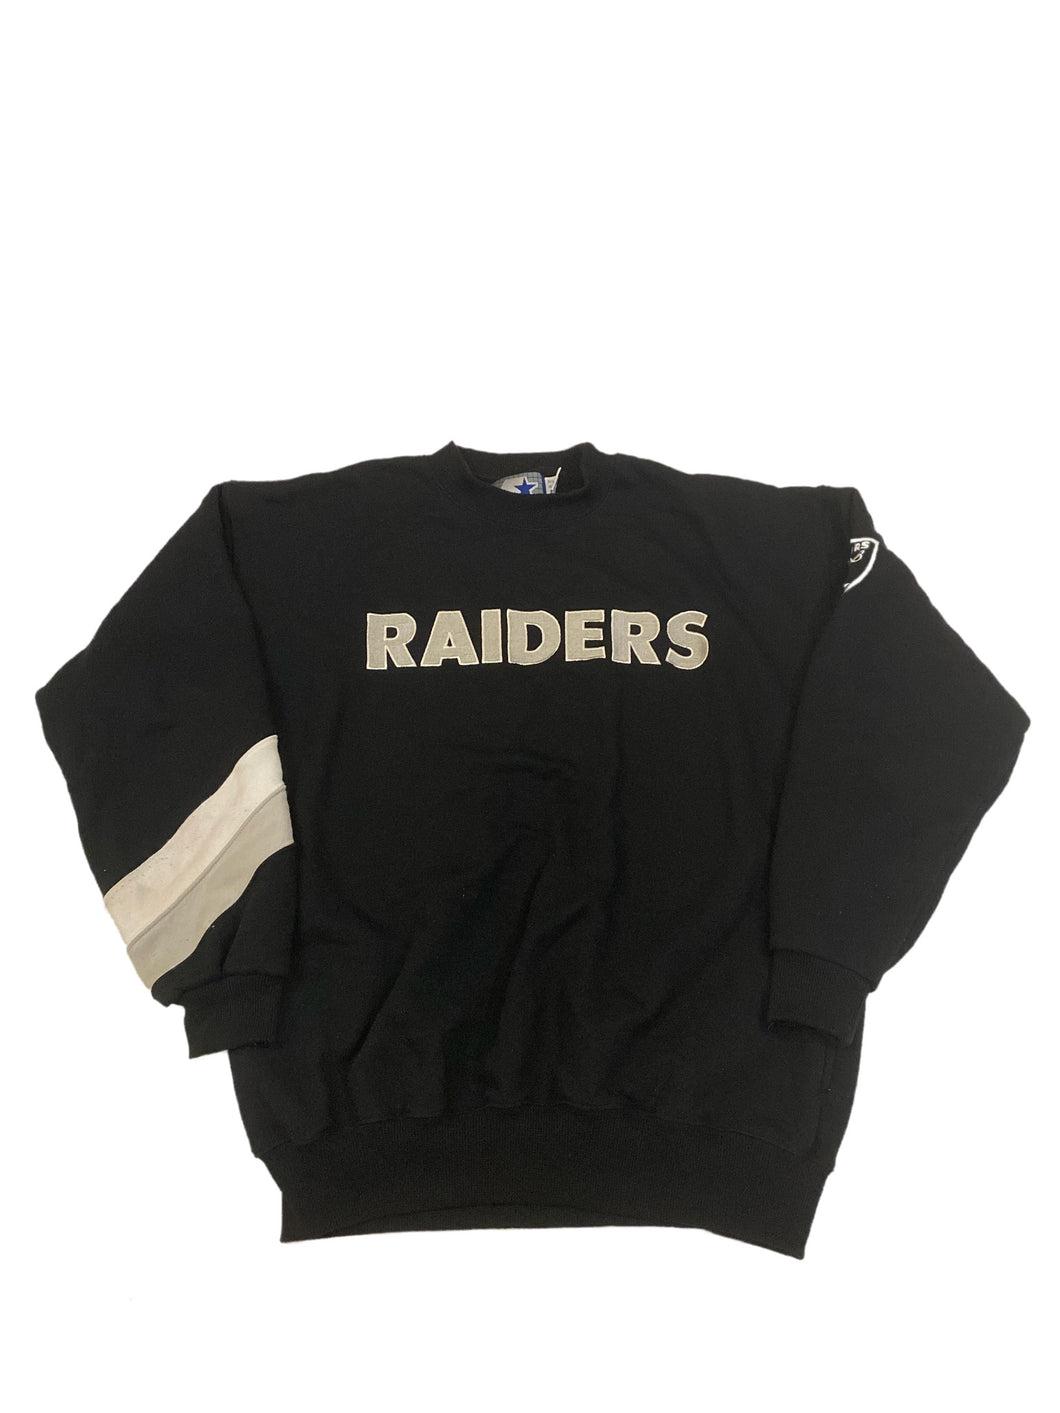 Los Angeles Raiders Crewneck